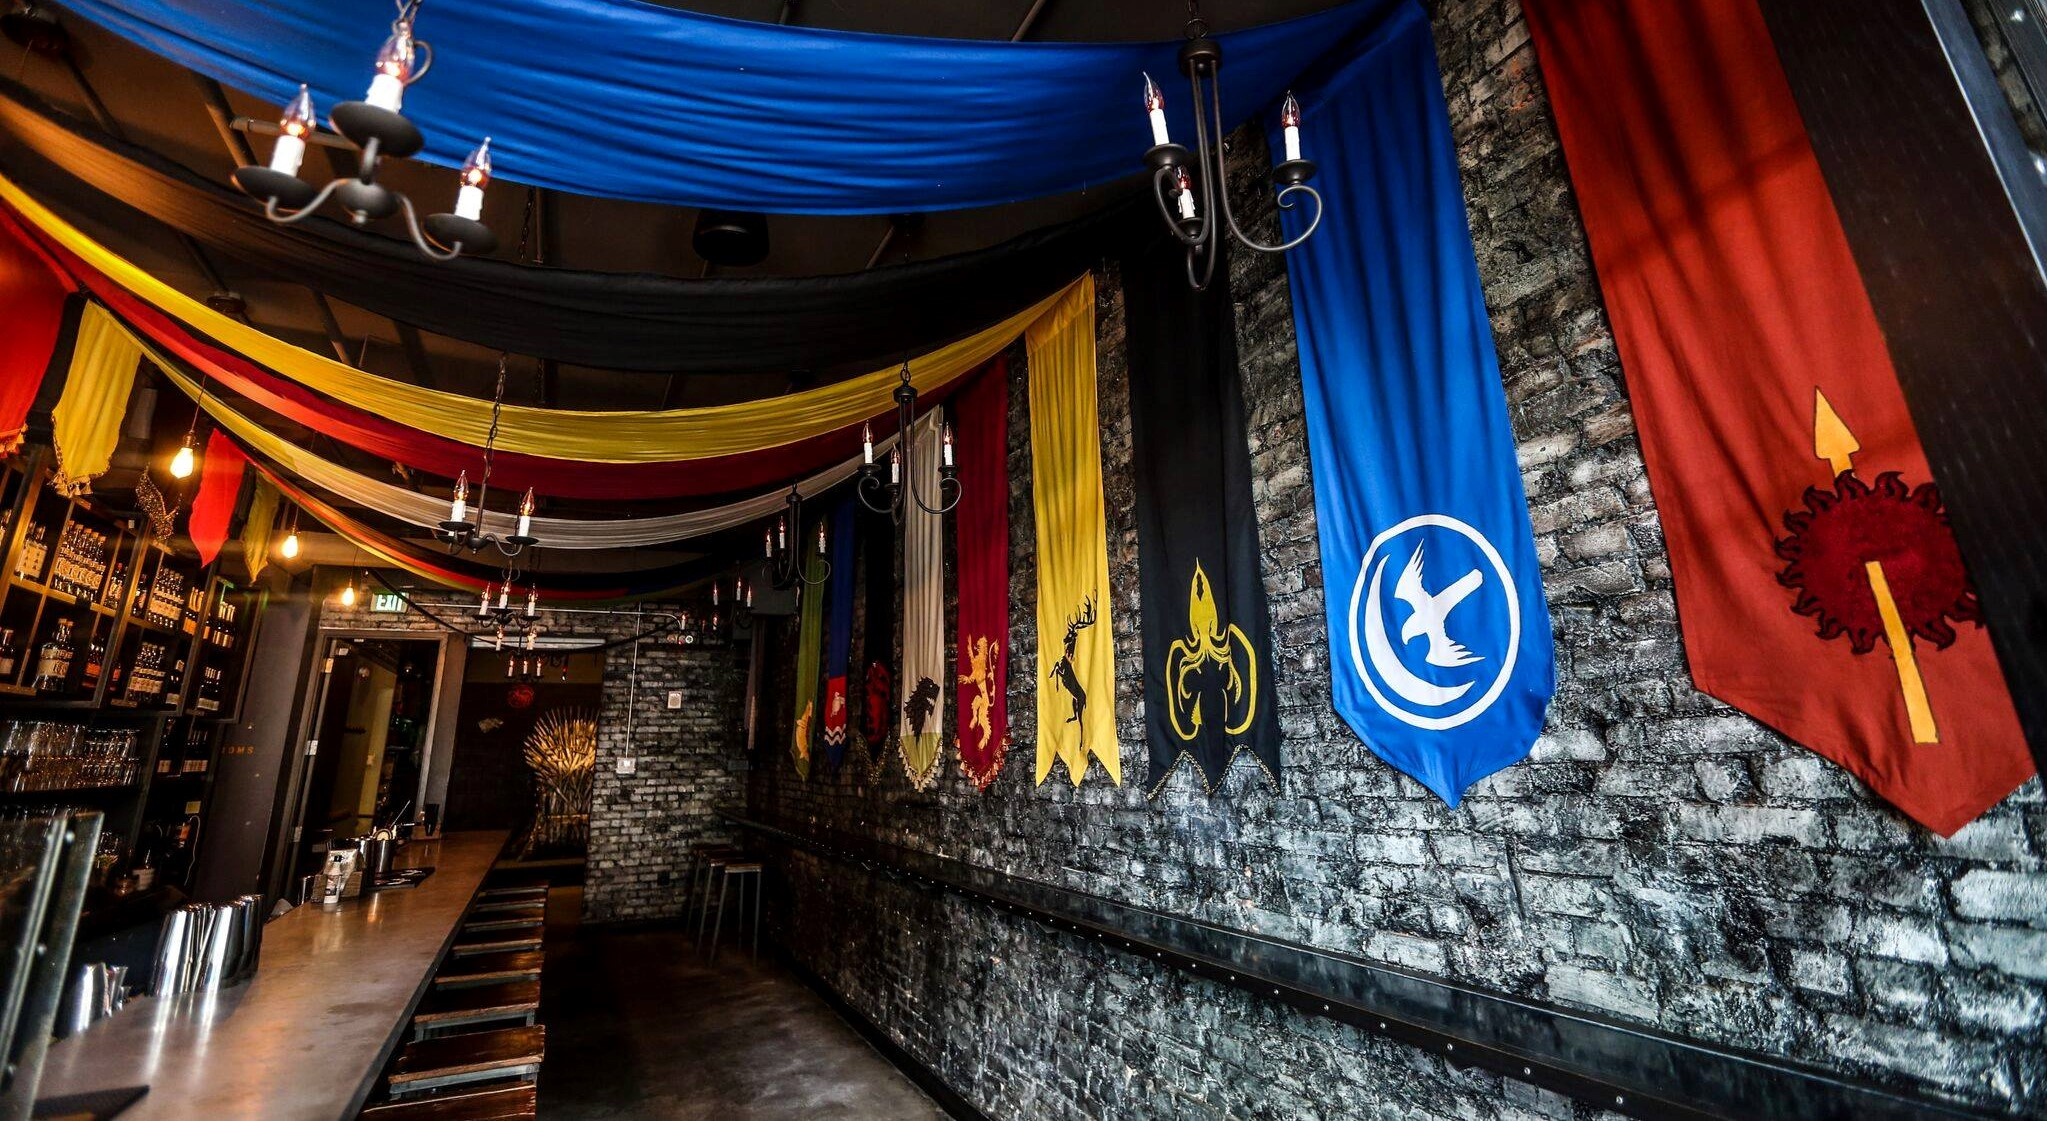 The Best Game Of Thrones Pop Up Bar In Washington Dc